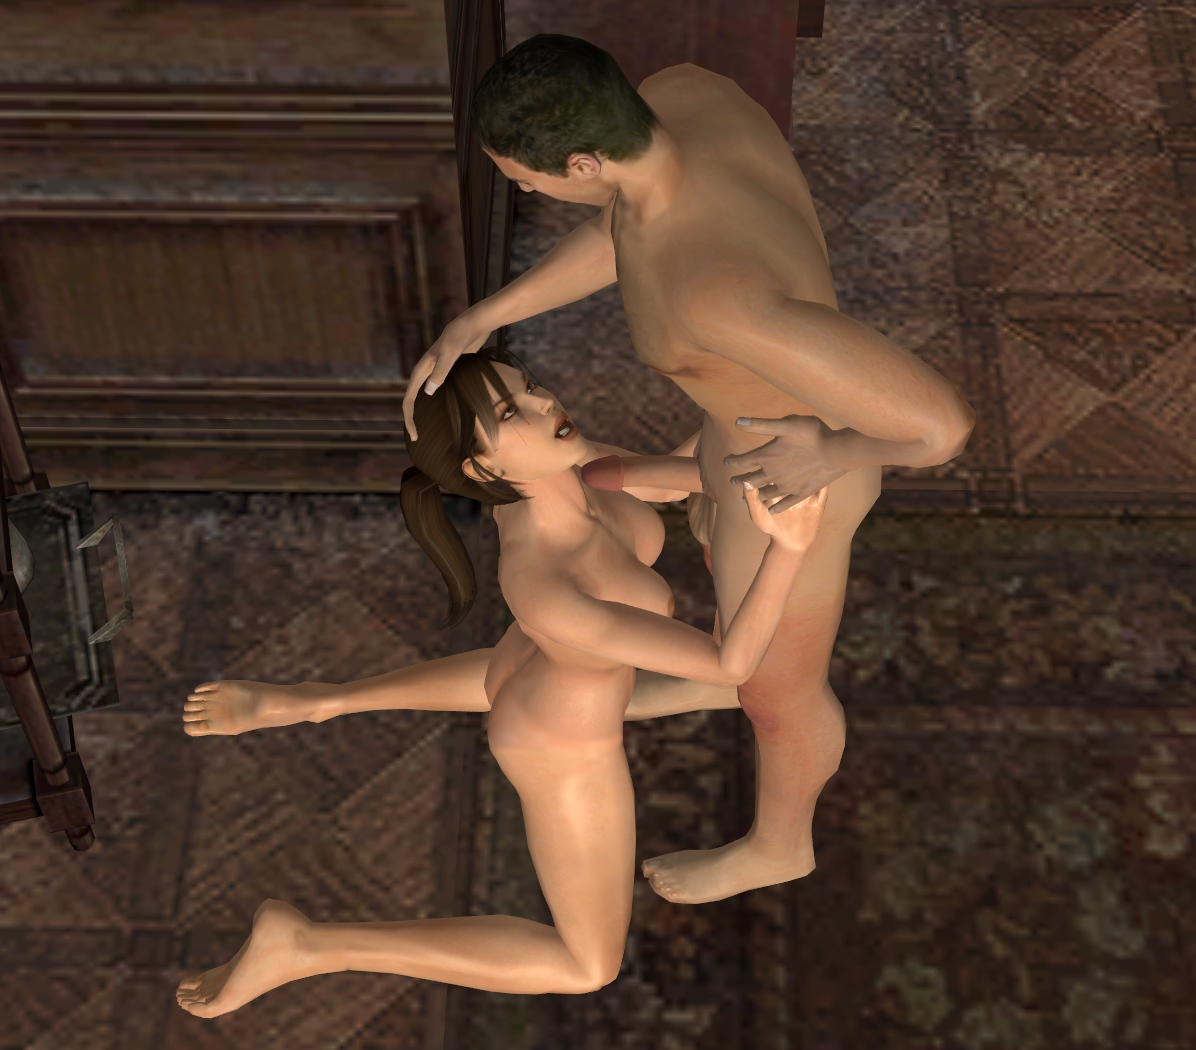 Lara croft nude mod pics sexy videos